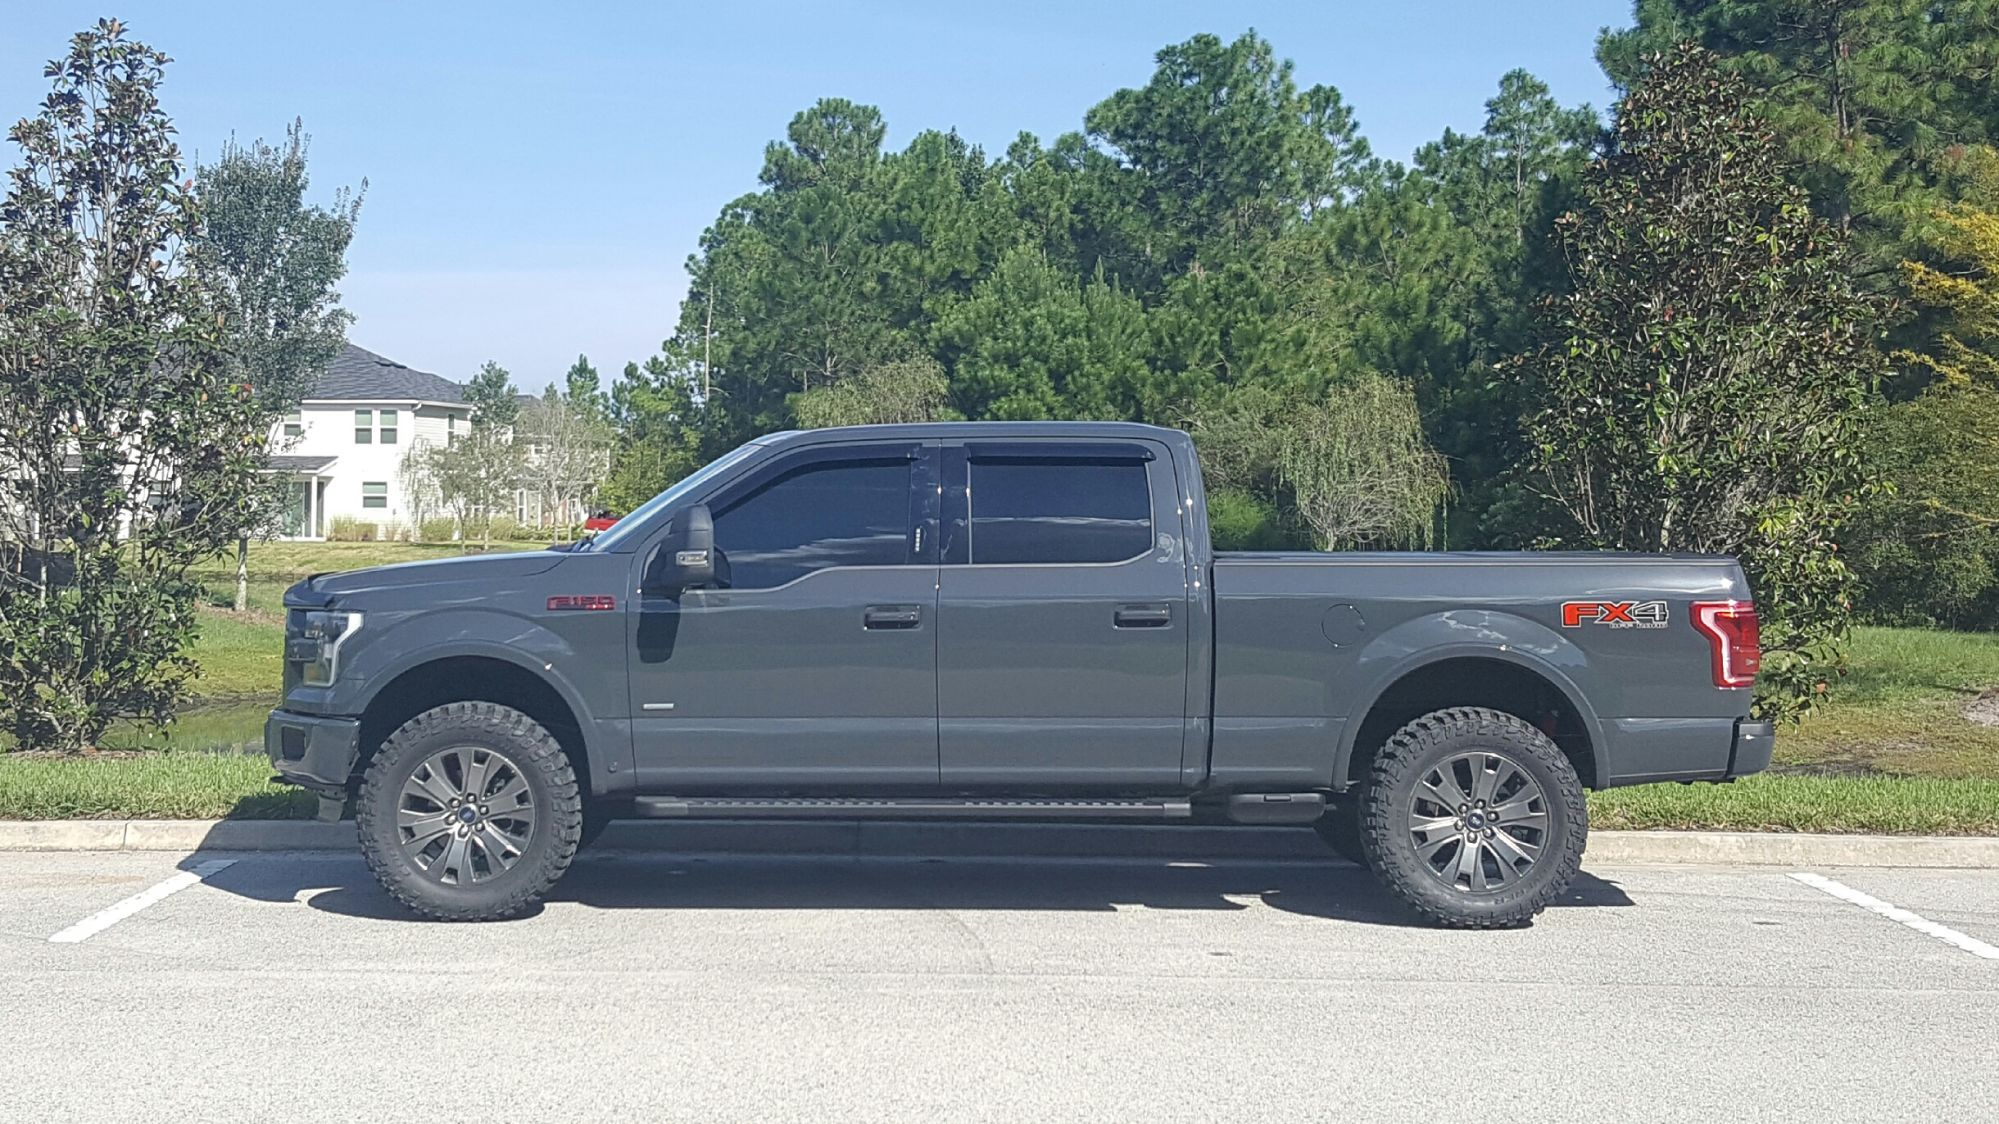 A supercrew 157 wheelbase 6 5 bed picture thread ford f150 forum community of ford truck fans